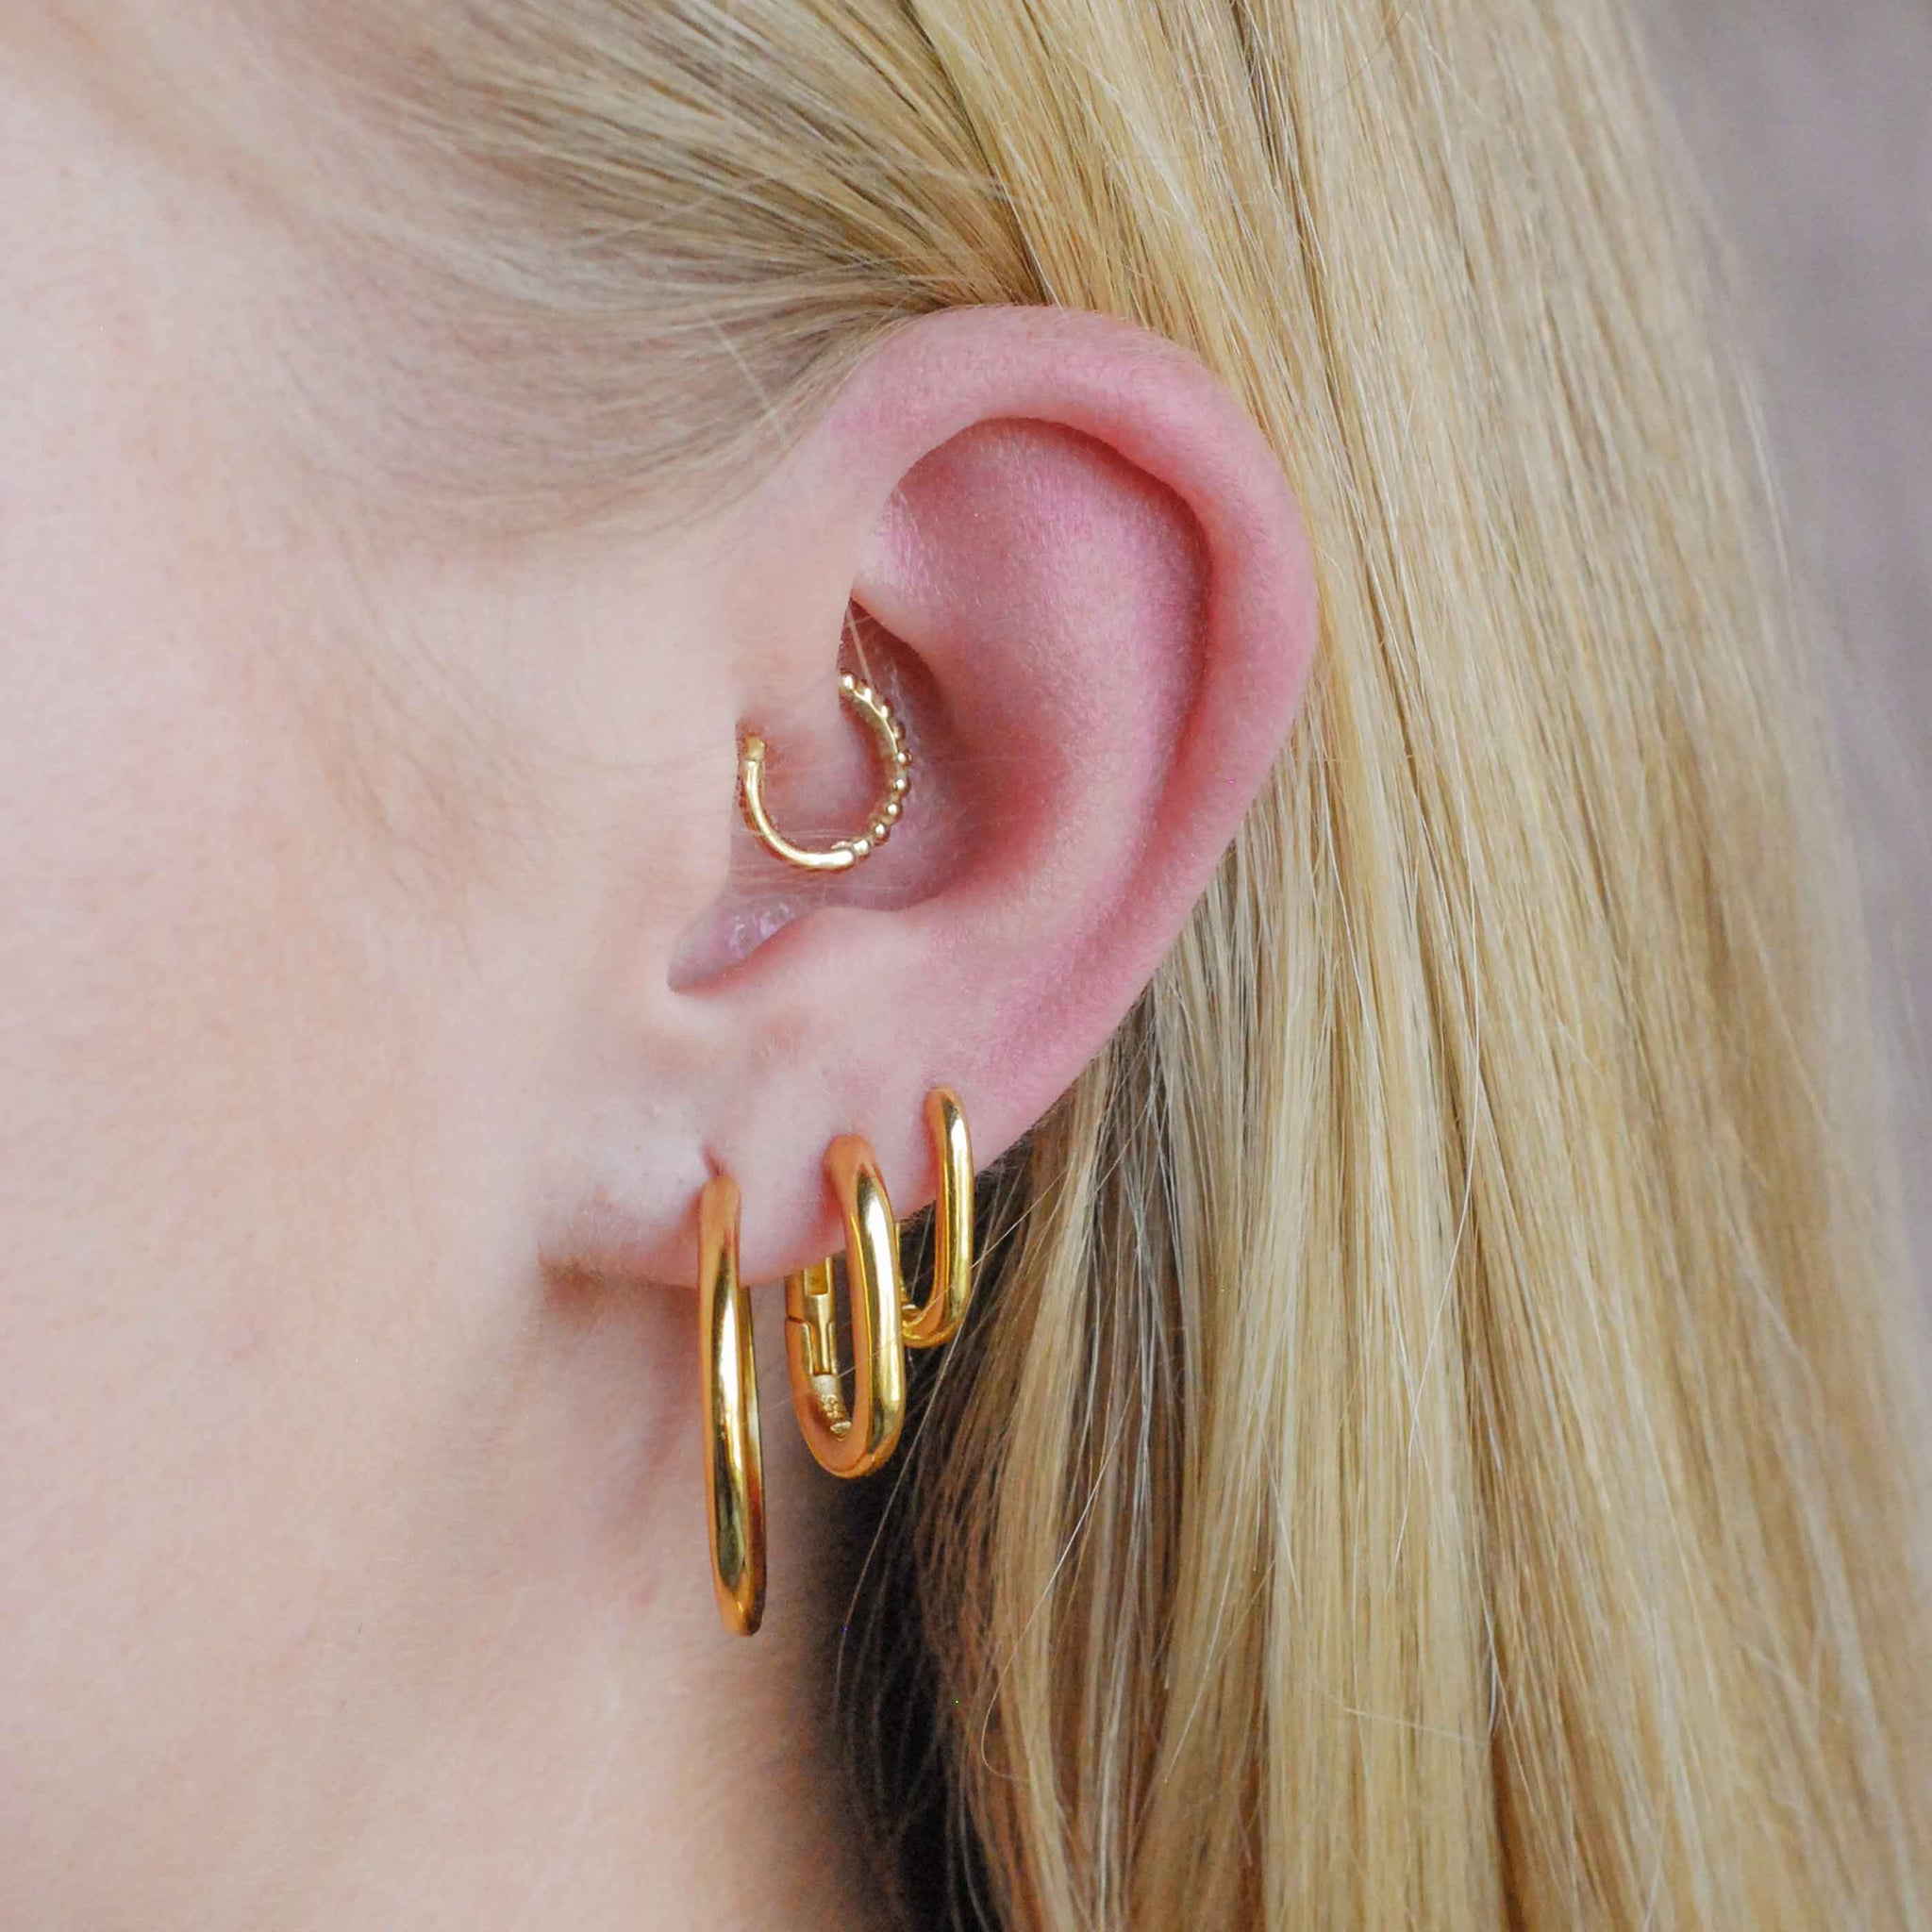 Simple Hinge Hoops in Gold worn with rectangular hoops and huggies